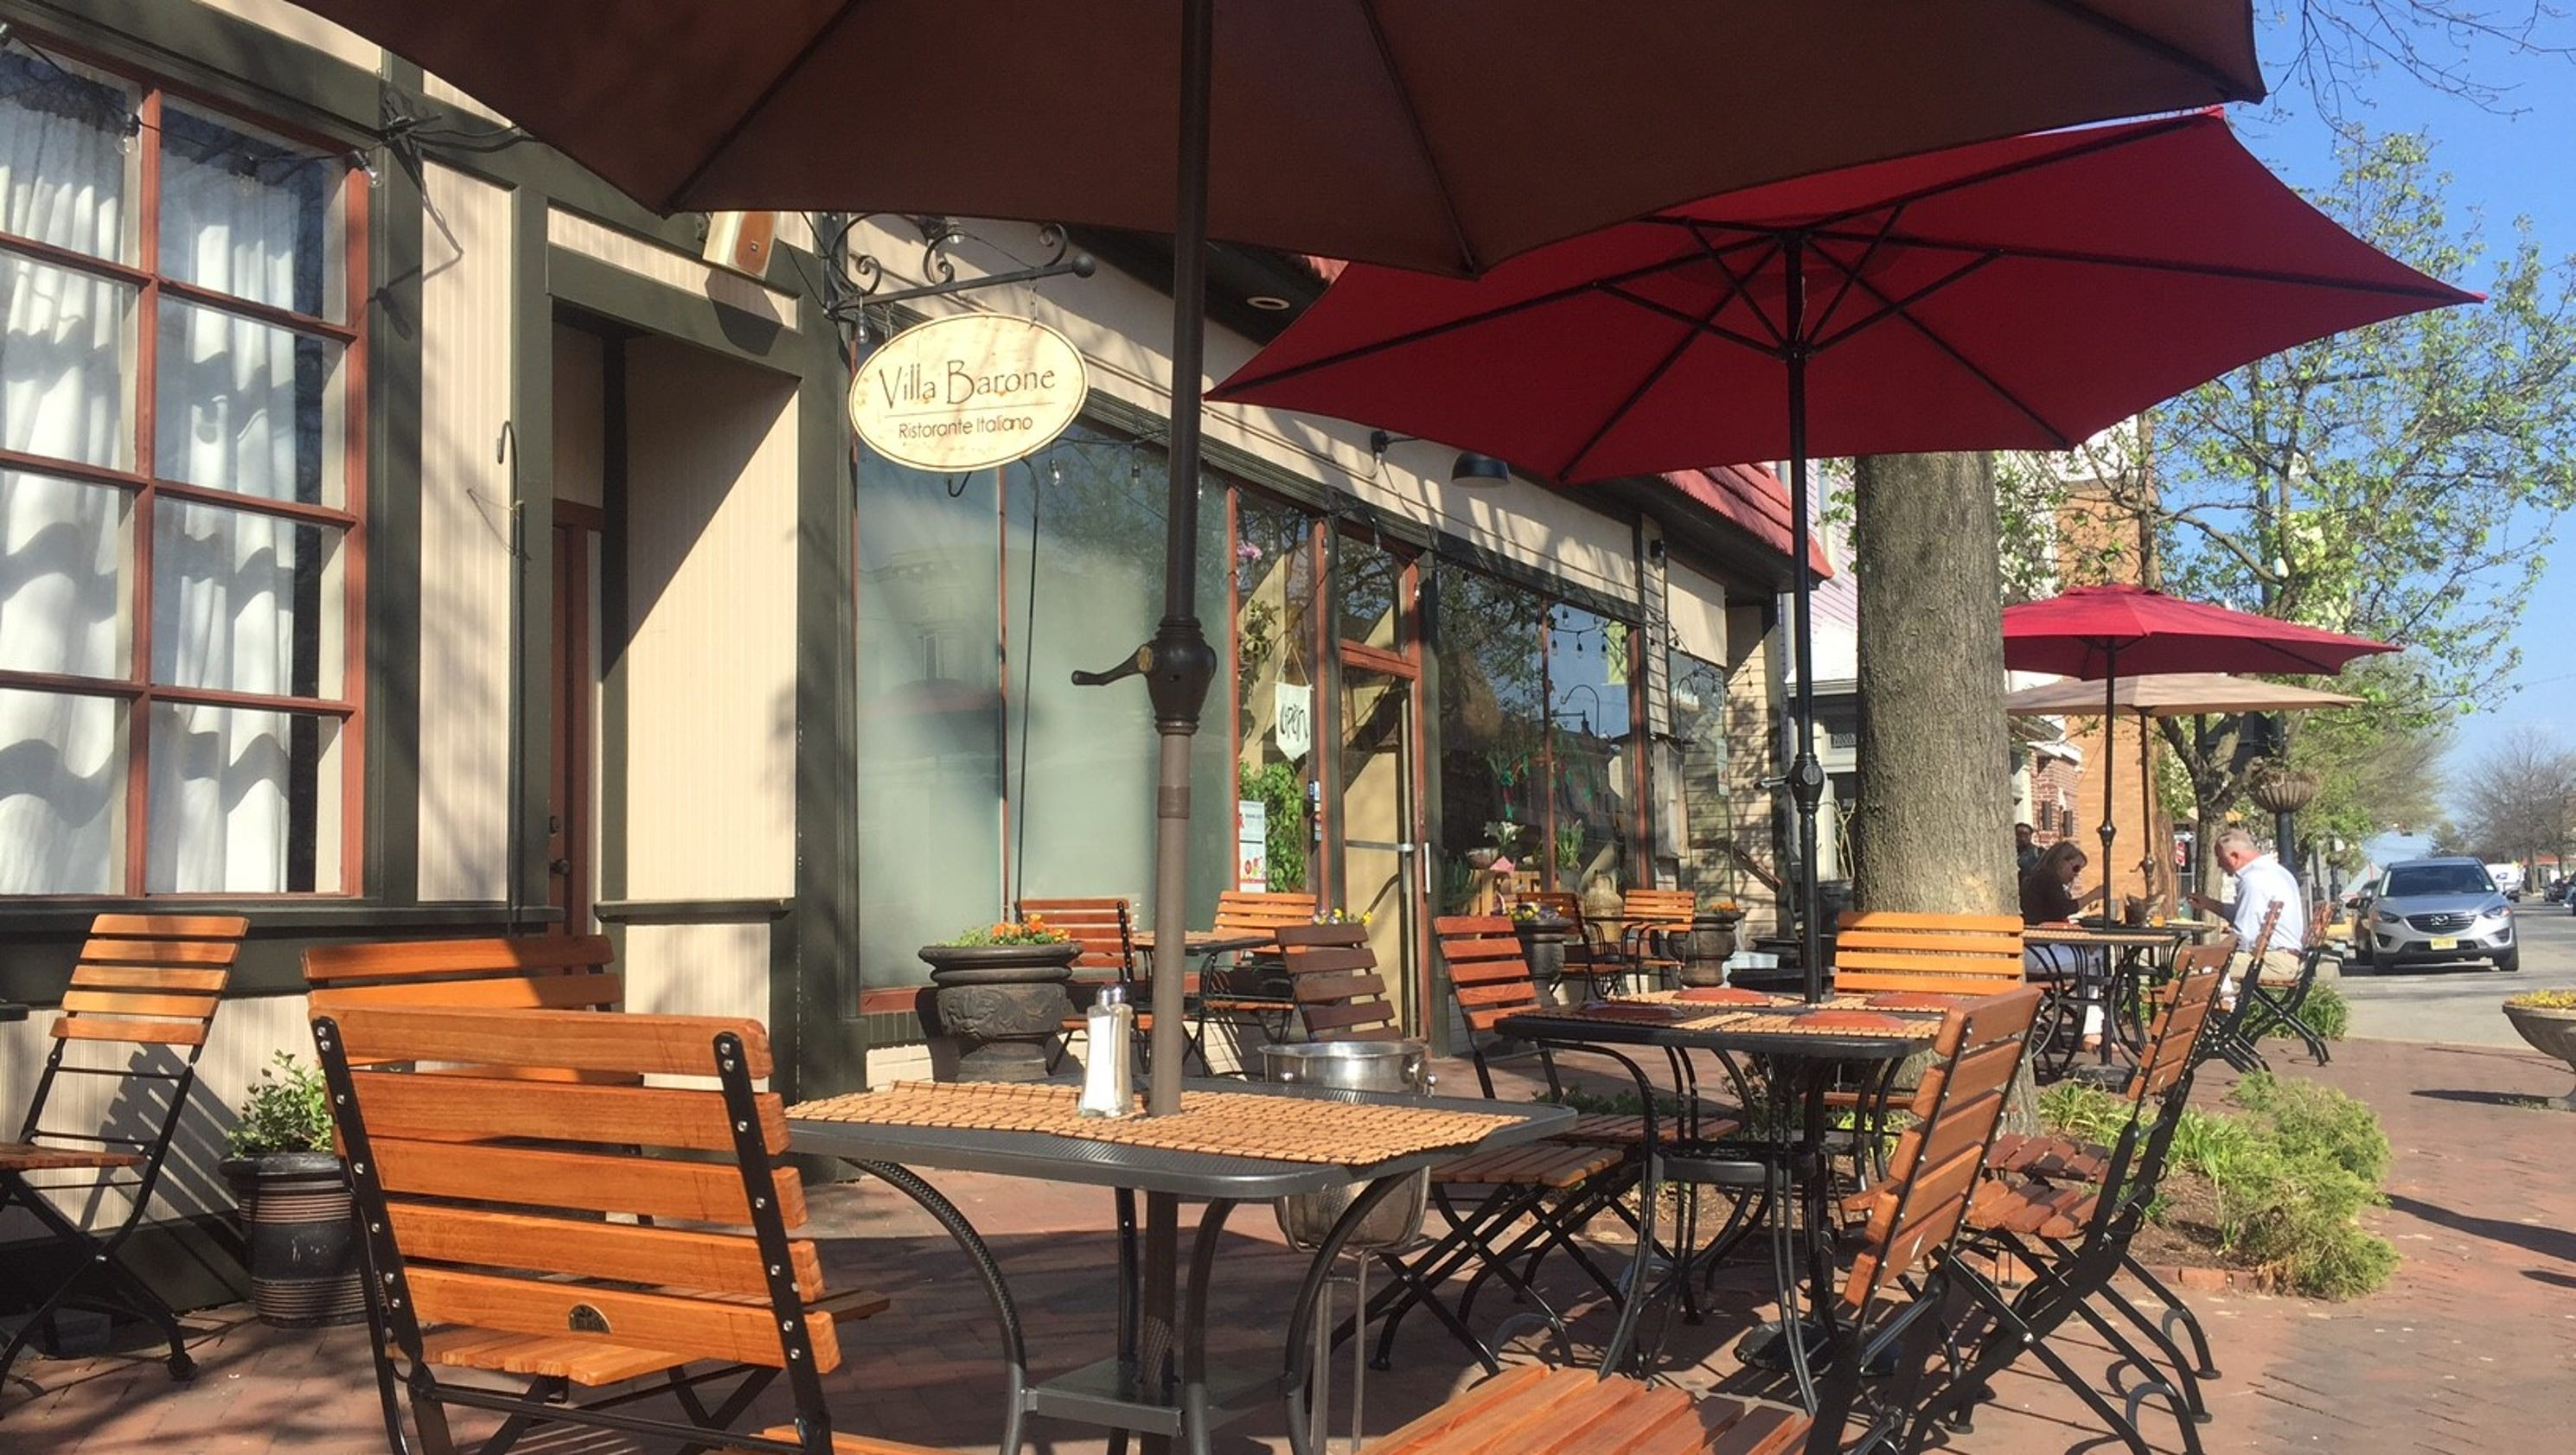 14 places & counting to dine outdoors in Collingswood